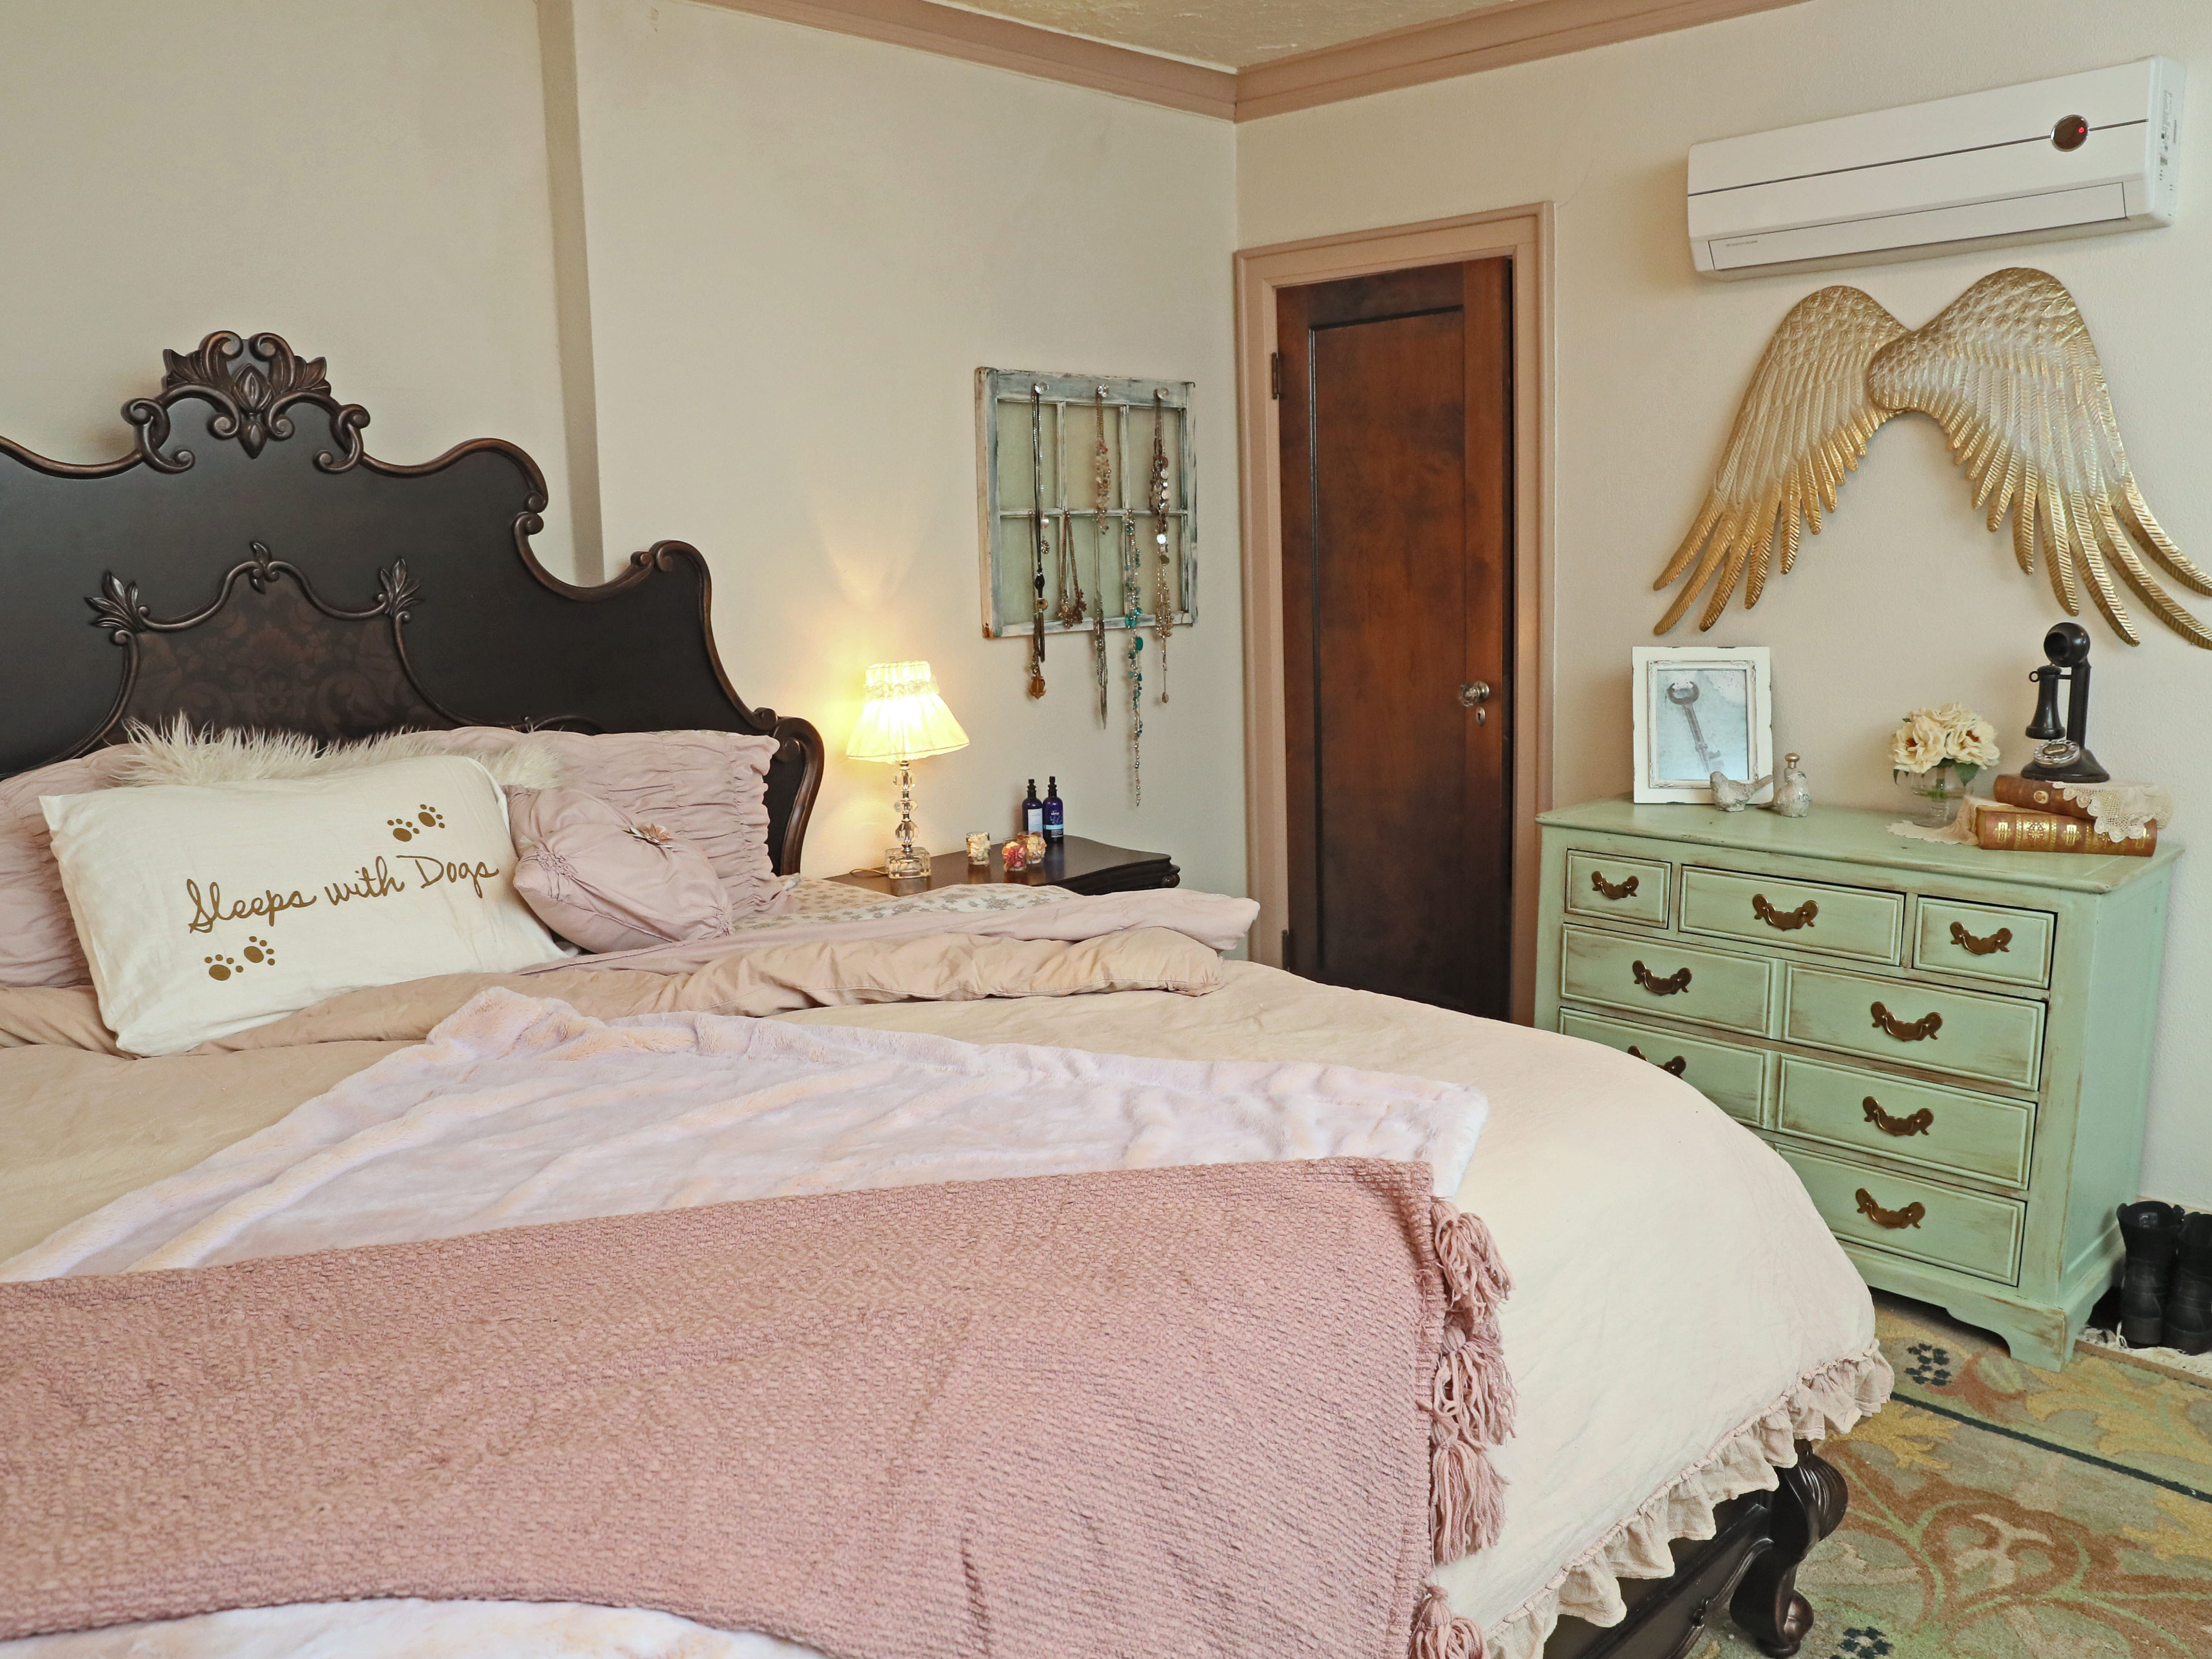 The master bedroom includes the owner's mom's childhood dresser that her mom redid for her in a light green distressed color.